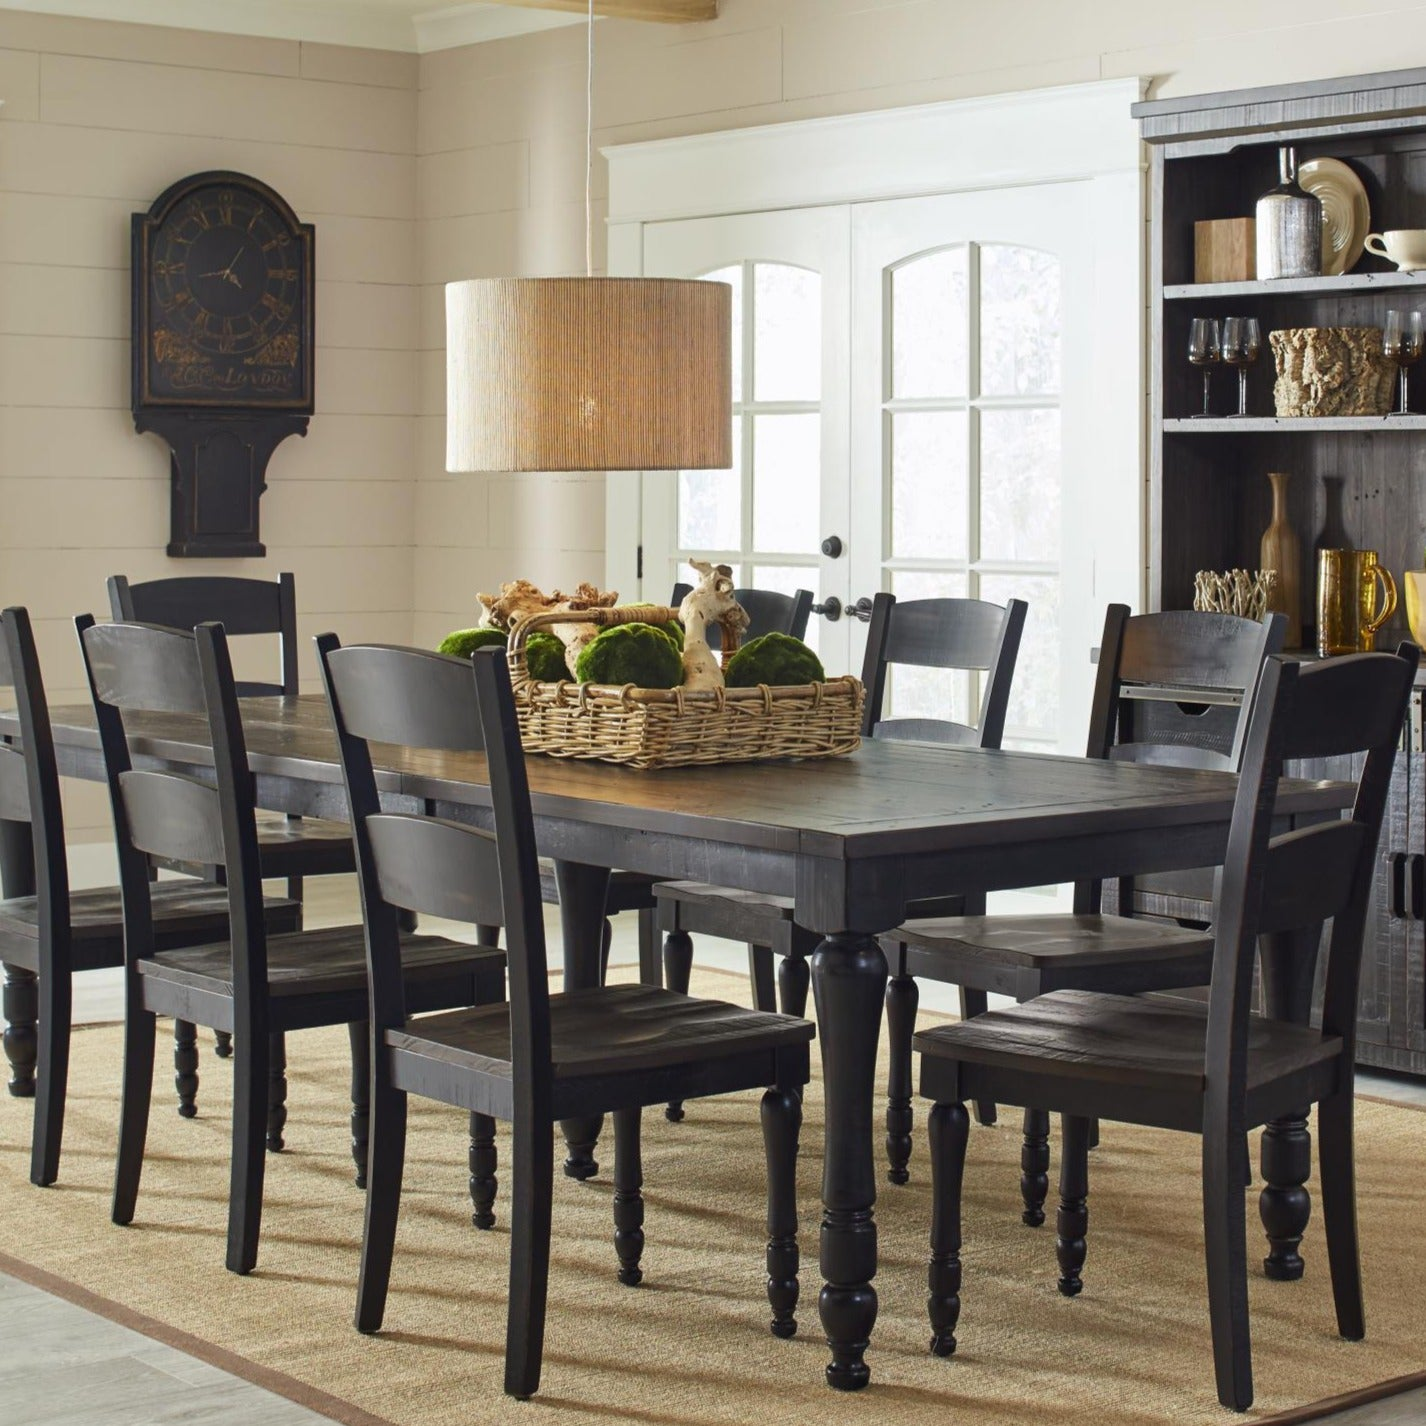 Urban Loft 7-Piece Extendable Dining Set in Vintage Black